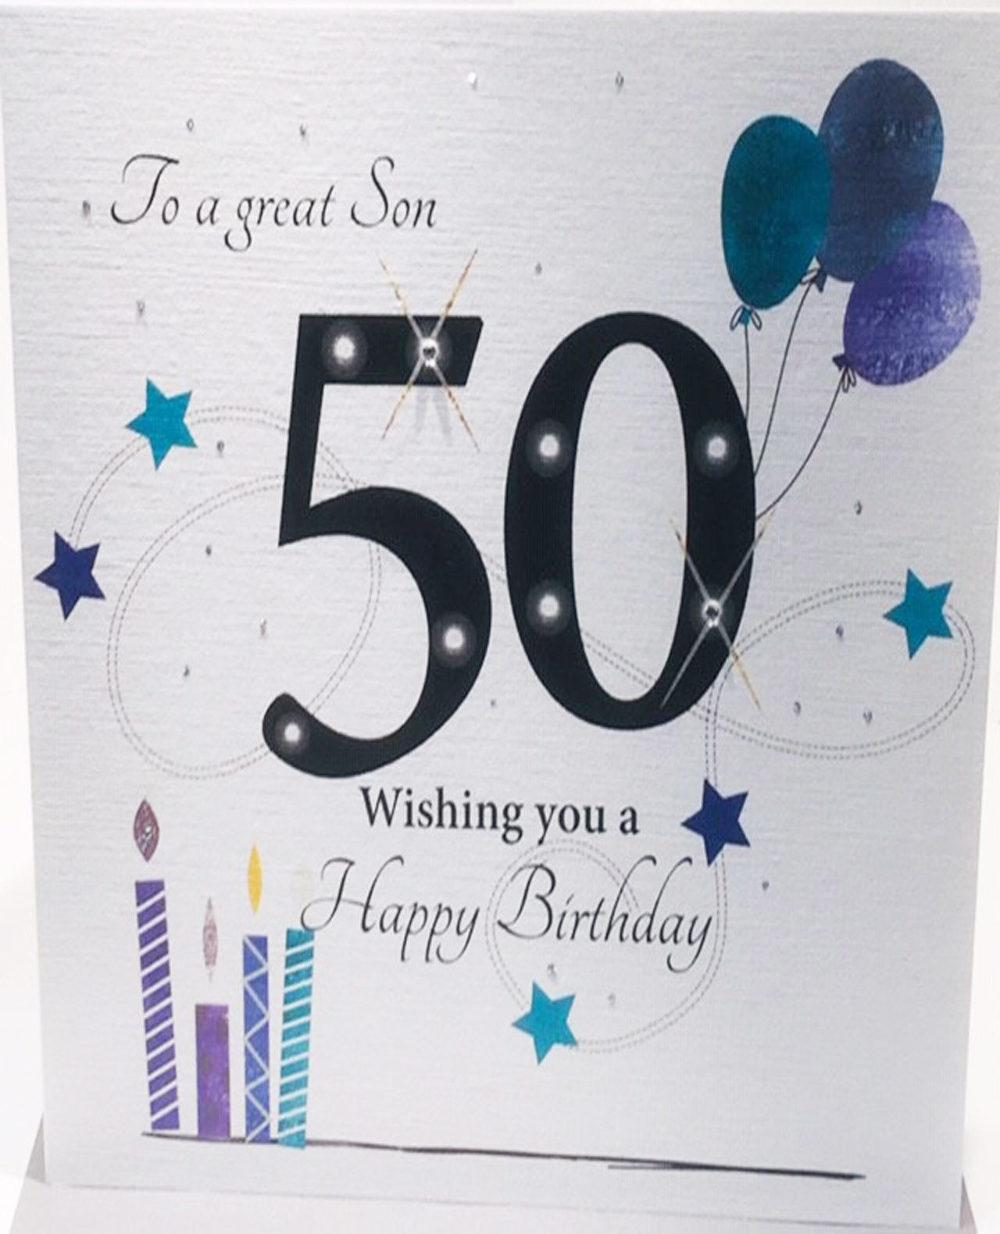 Large 50th Birthday Card For Son 8 25 X 8 25 Inches 5060397067920 Ebay Birthday Cards For Son 50th Birthday Cards 50th Birthday Quotes